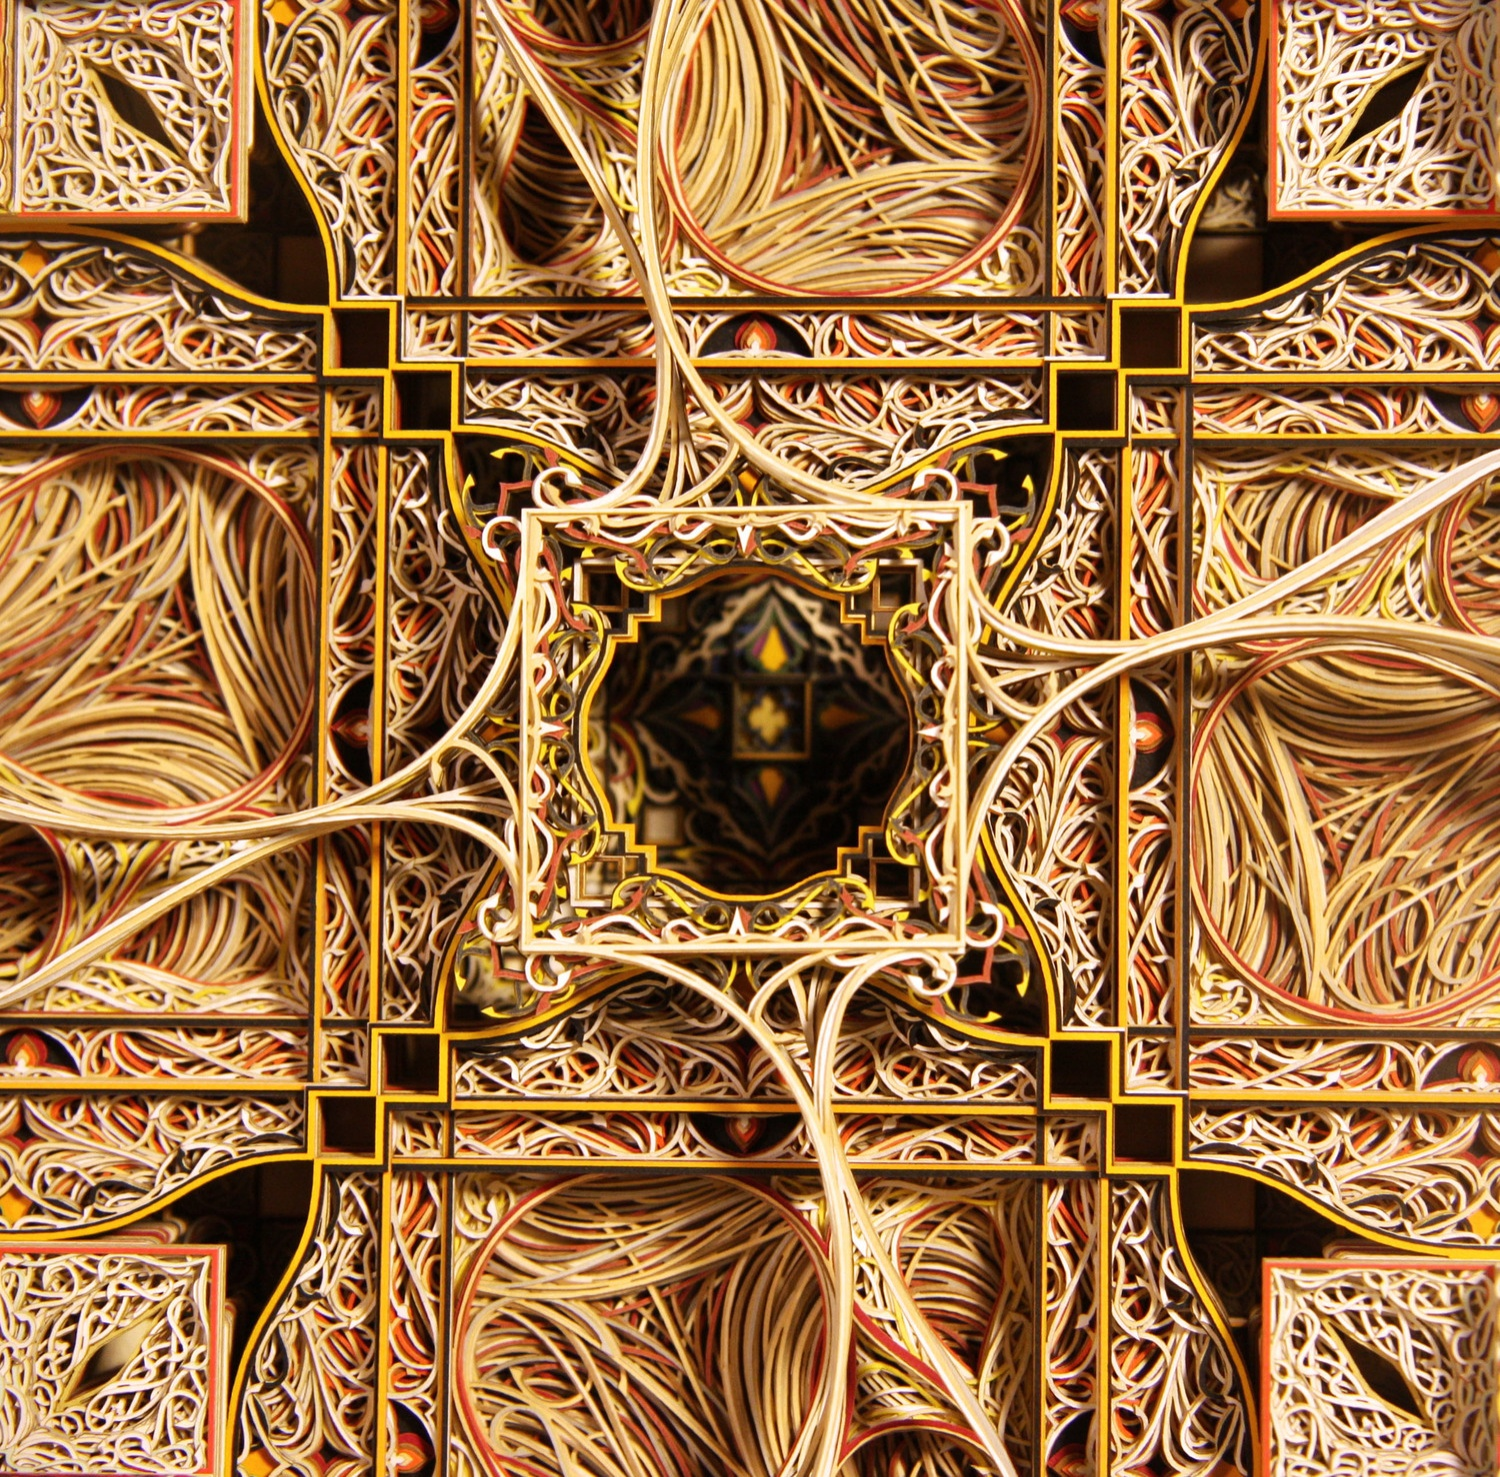 intricate-stained-glass-windows-colorful-laser-cut-paper-eric-standley-either-or-delta-detail-6-strictlypaper